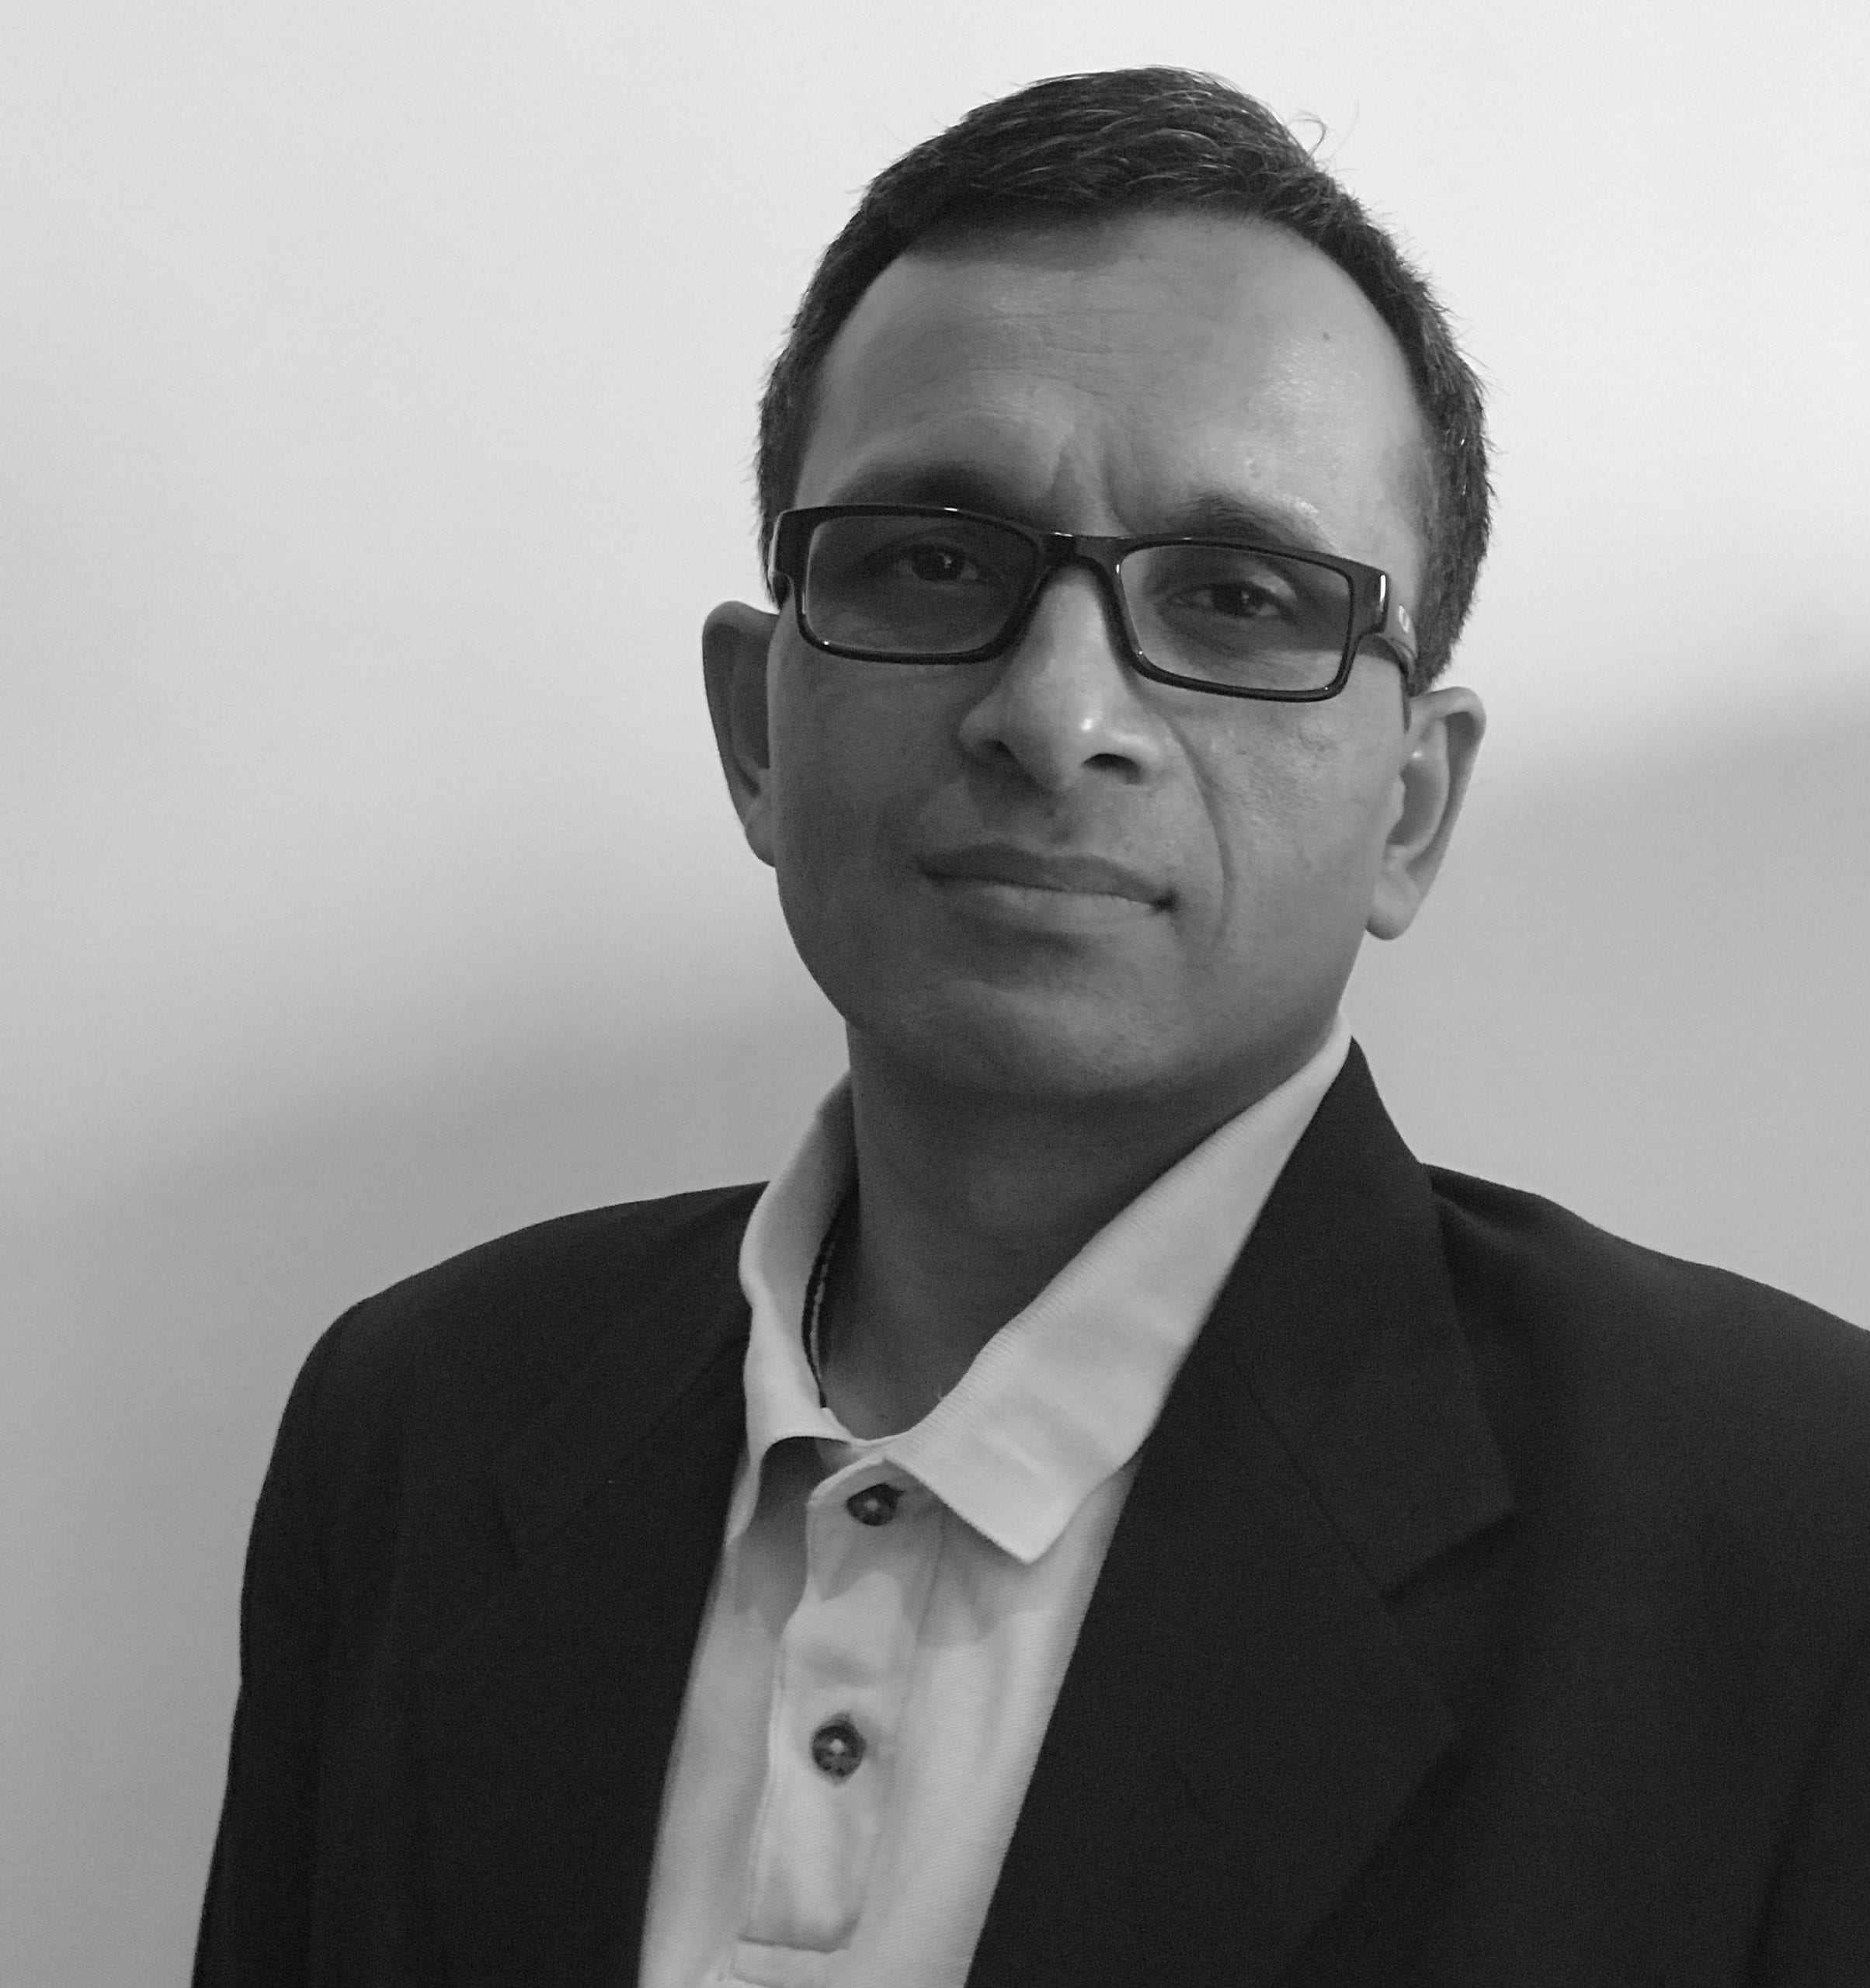 Black and white headshot of Anuraag Guptaa